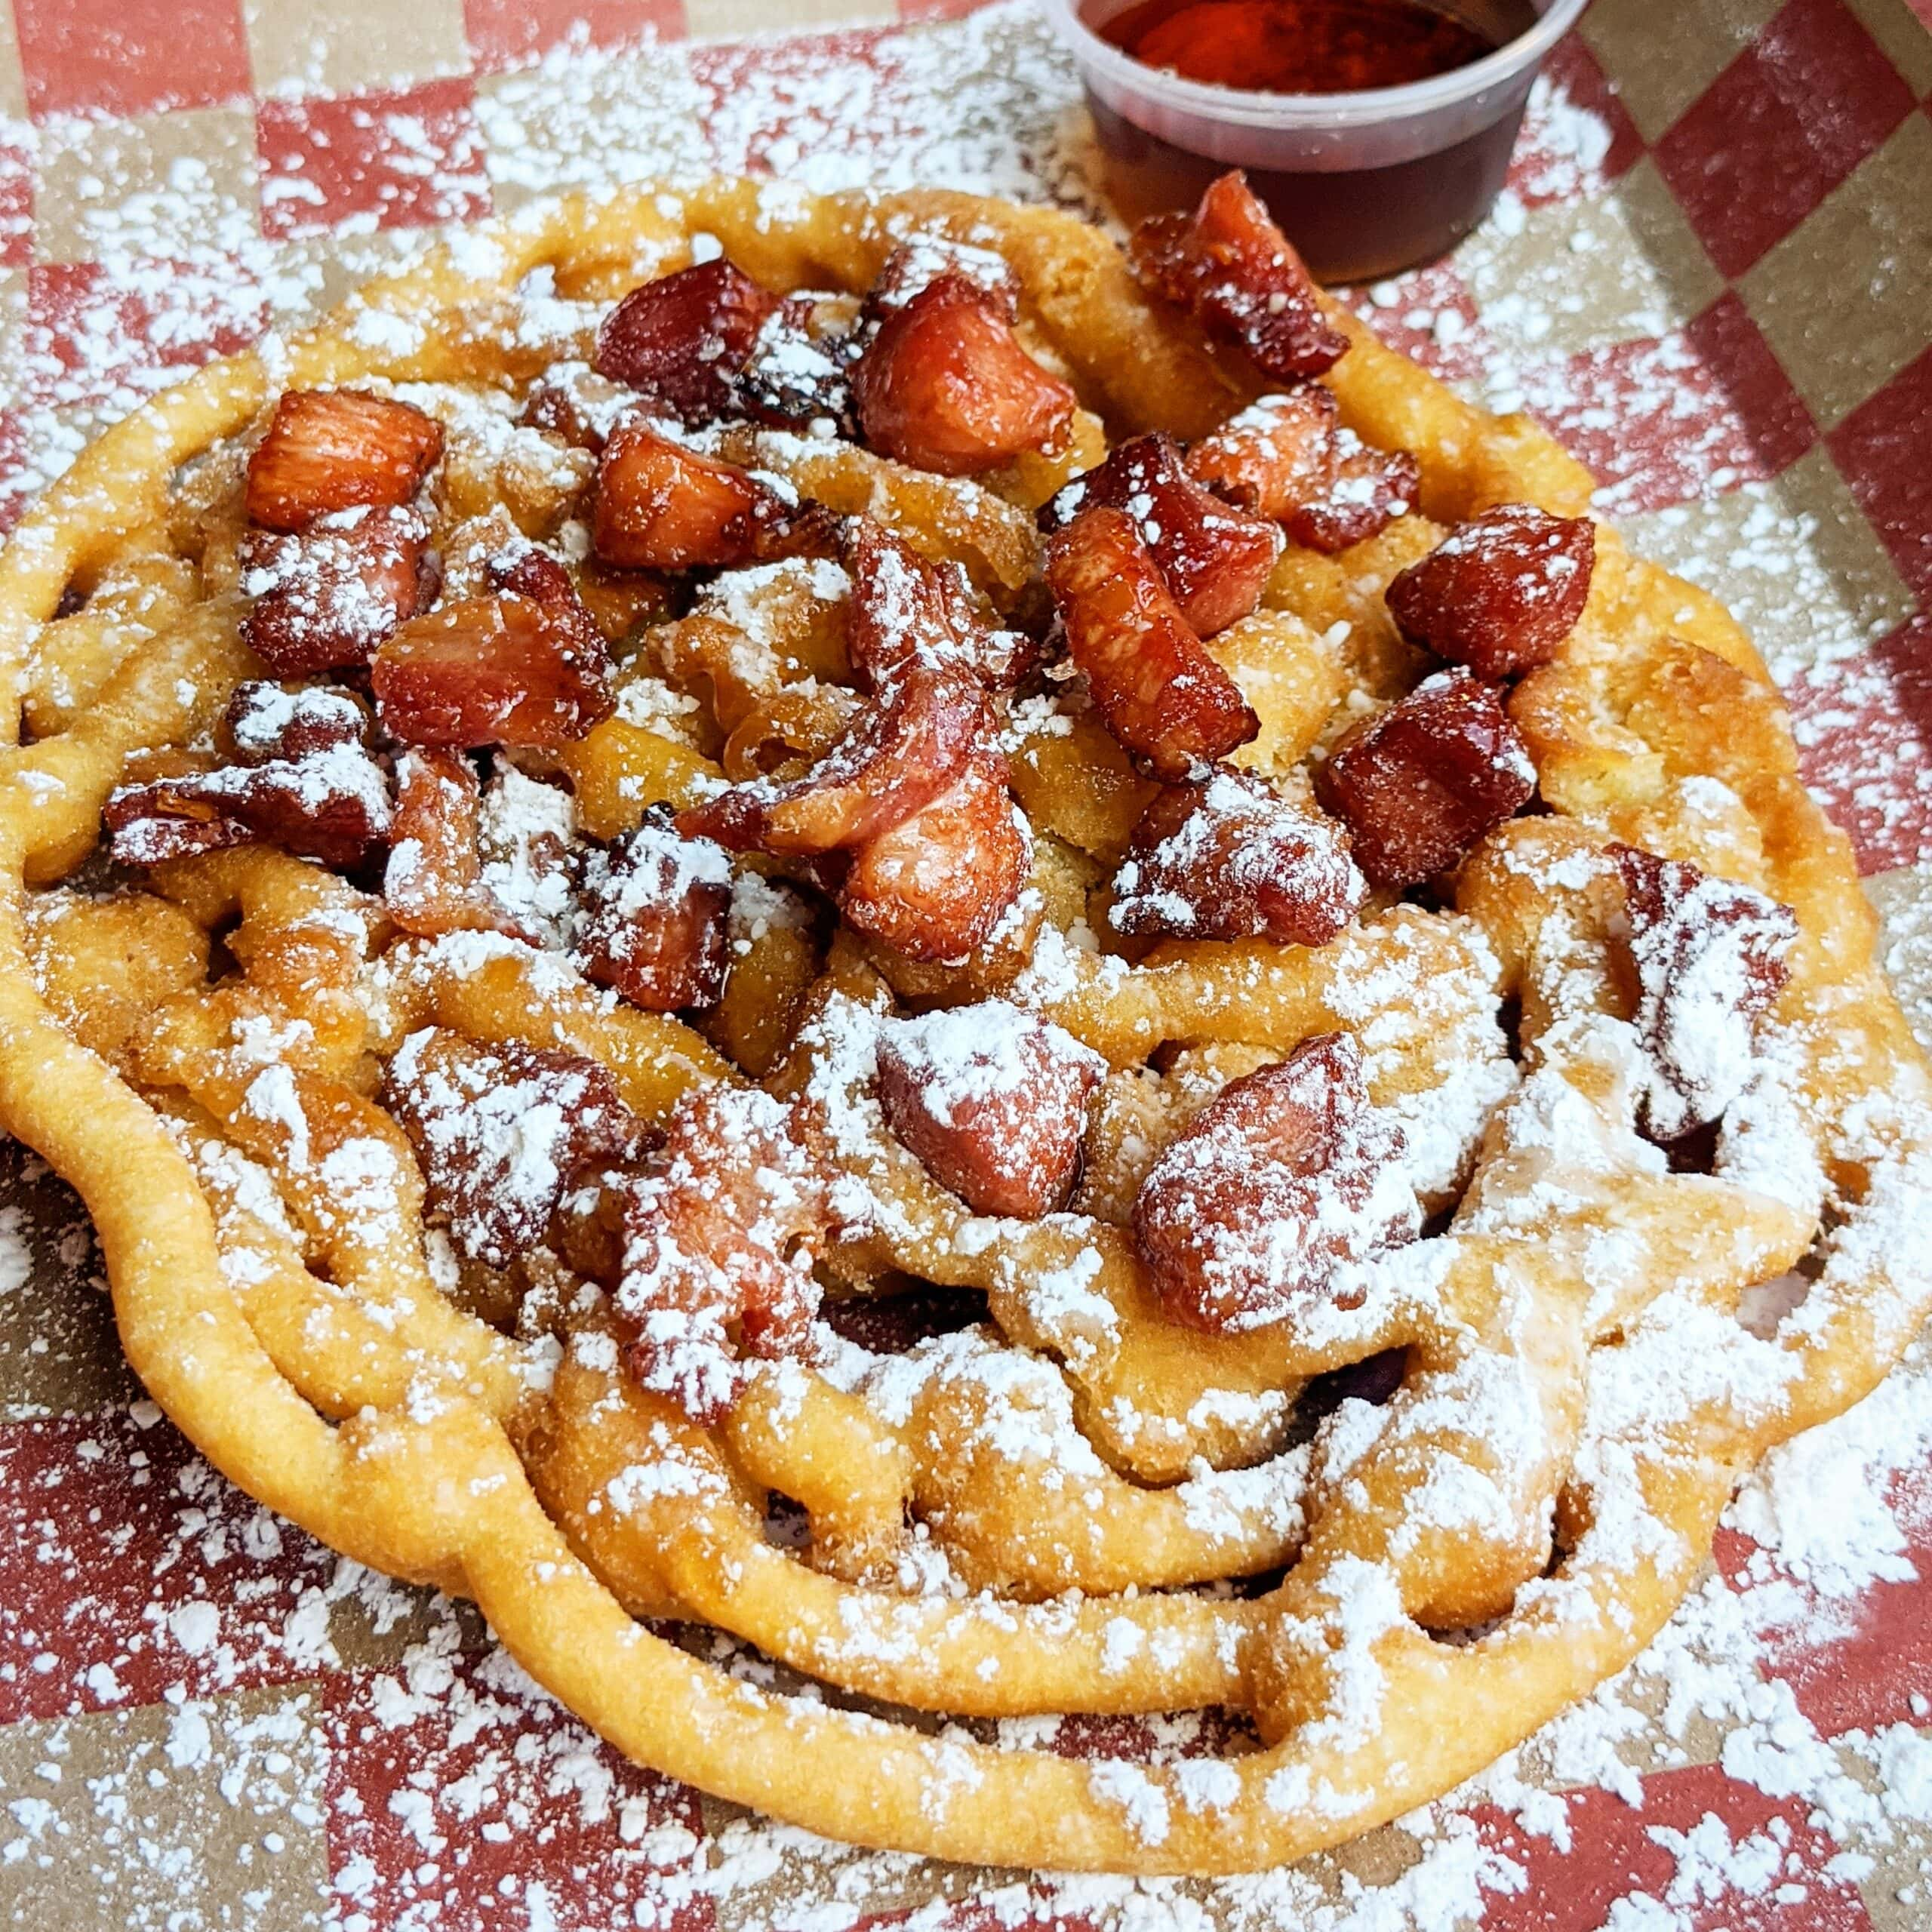 Maple Bourbon Bacon Funnel Cake